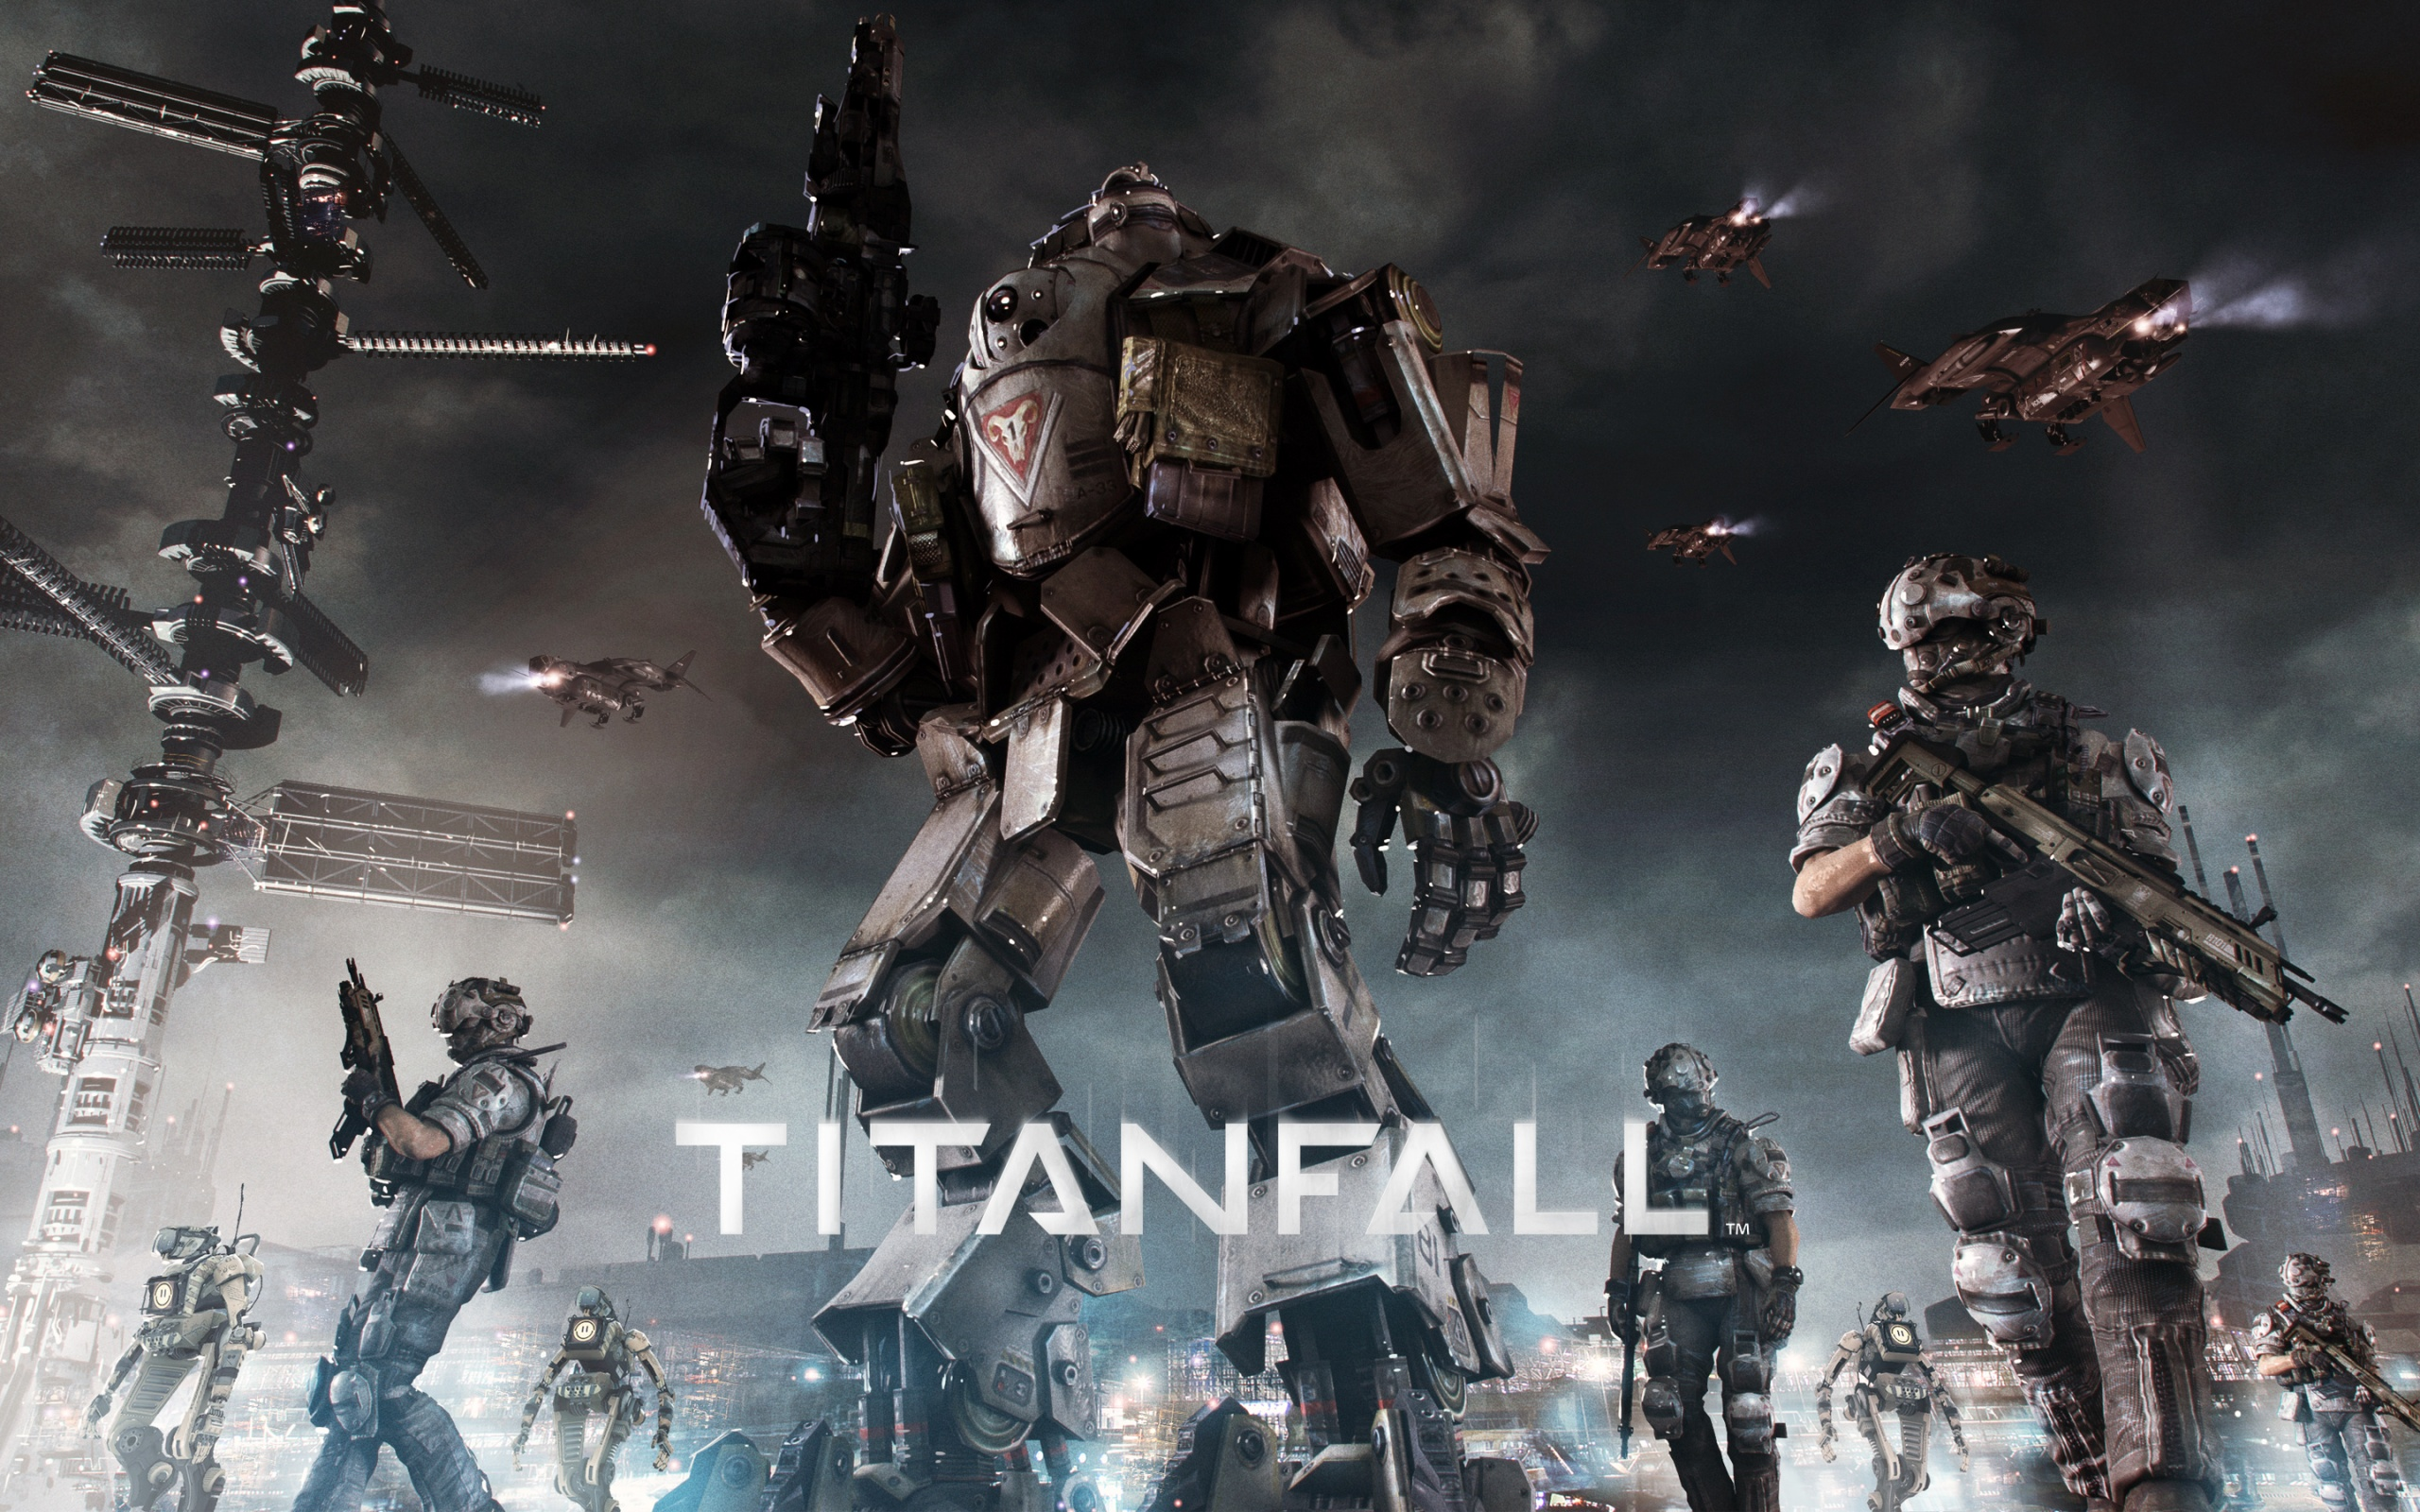 Titanfall Game Wallpapers HD Wallpapers 2560x1600